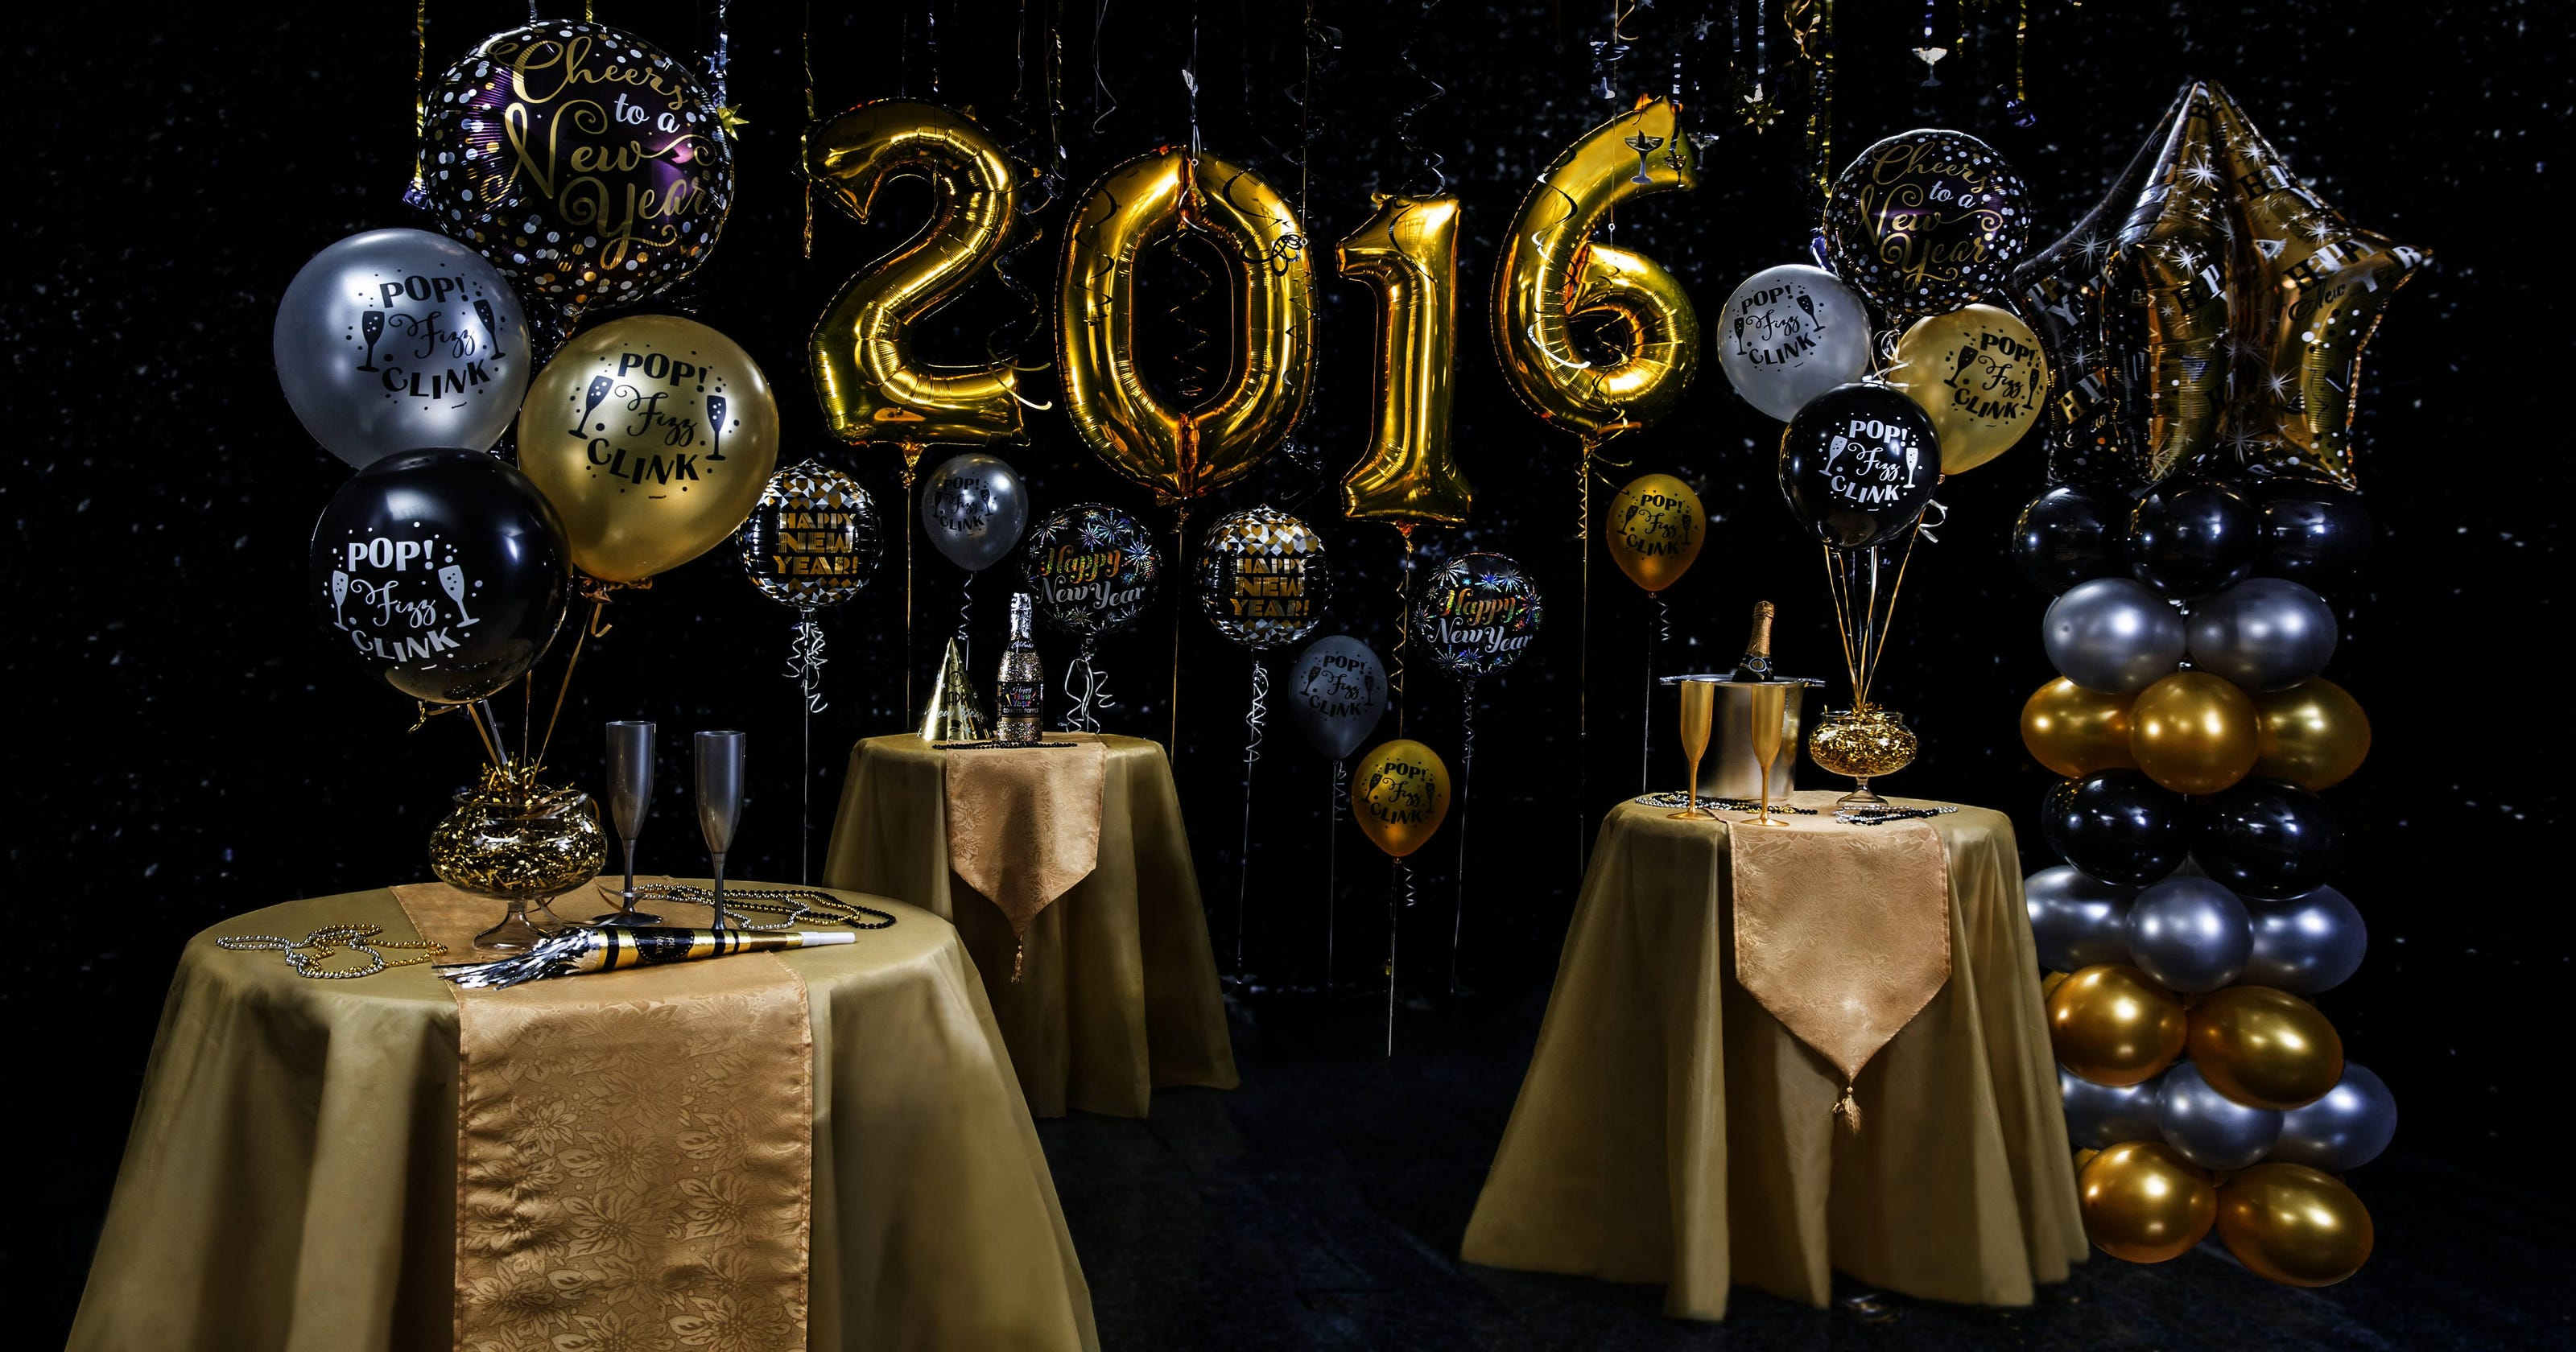 Fun ideas for New Year's Eve in Morris